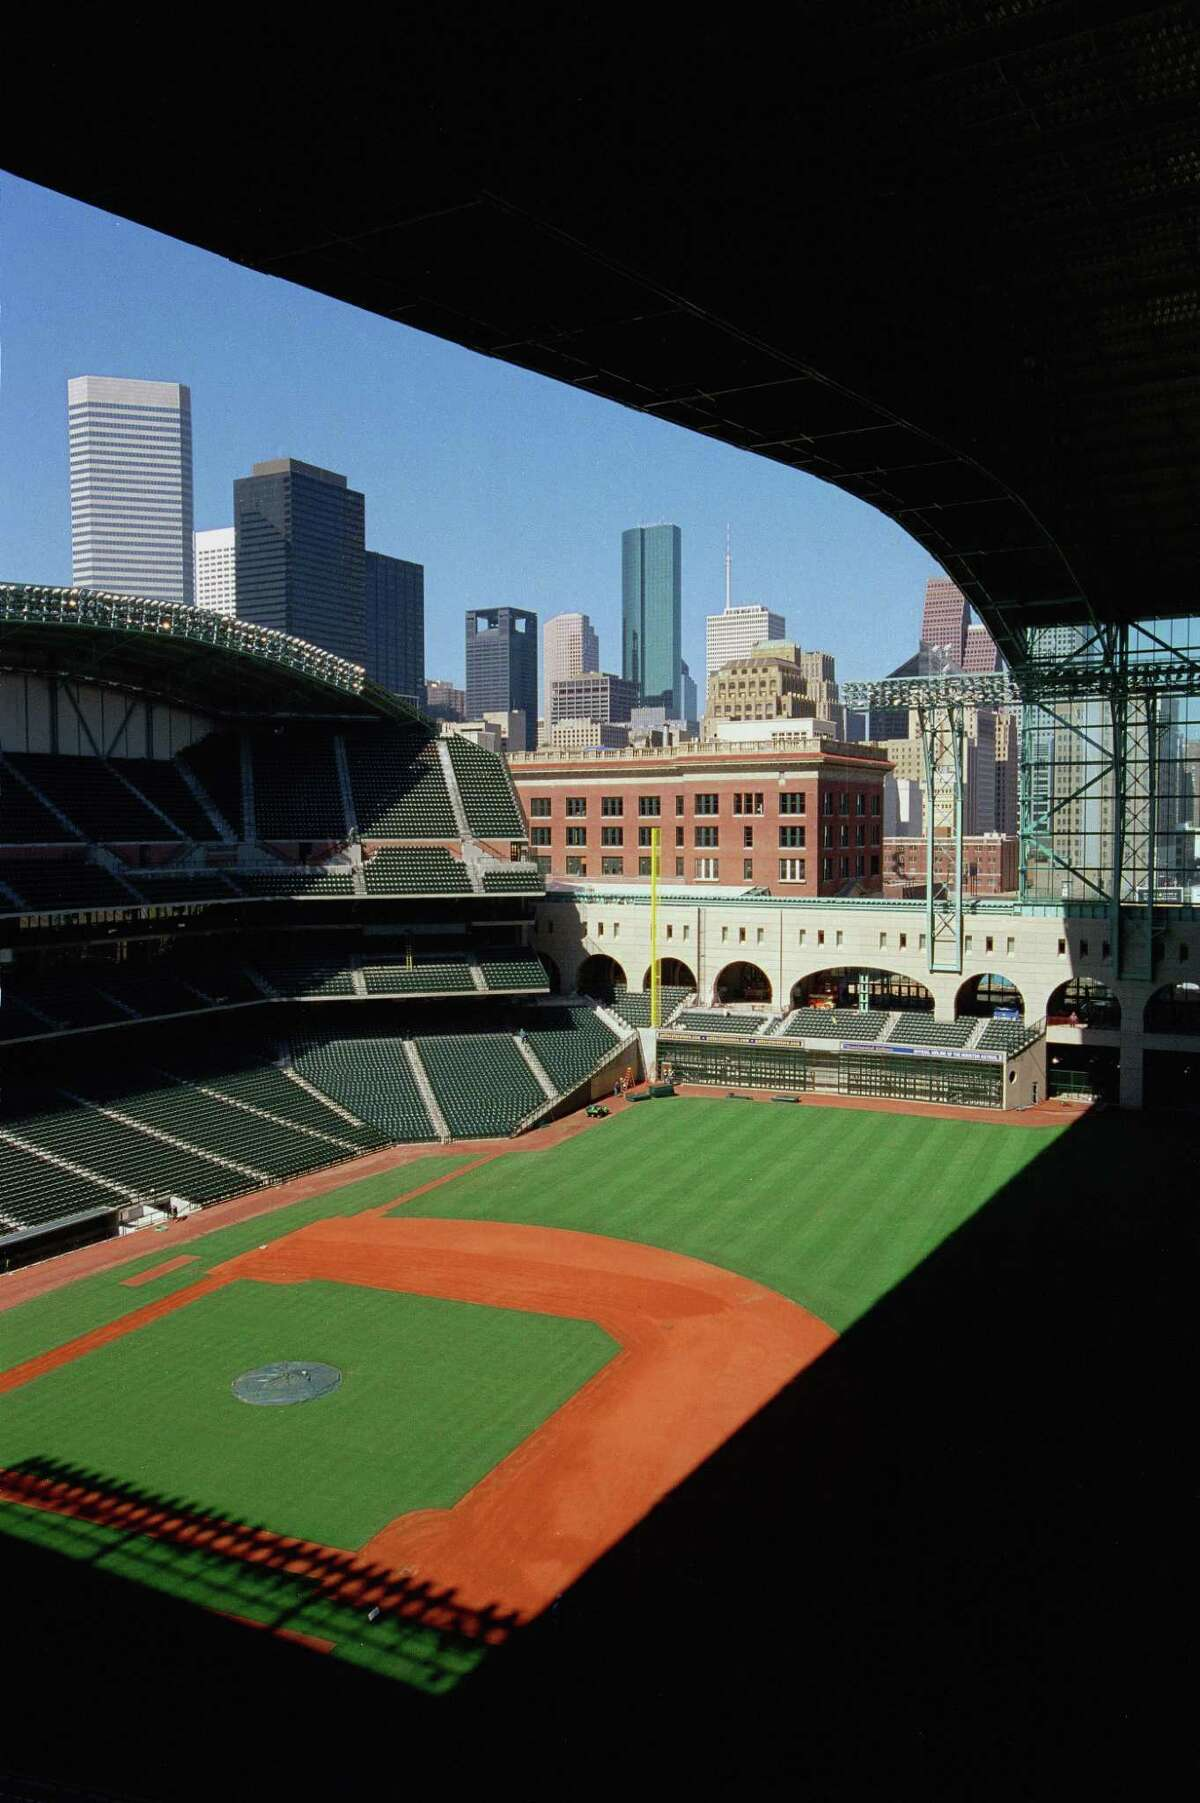 (Smiley N. Pool) -- The retractable roof peels back to unveil a spectacular downtown view from $12 seats in section 331 along the first base line on the Terrace Deck at Enron Field, photographed Saturday Mar. 11, 2000. HOUCHRON CAPTION (03/25/2000): Where can fans park? How much will a hot dog cost? How far away are the fences? These are just some of the questions answered in the Chronicle's 36-page guide to the opening of Enron Field. HOUCHRON CAPTION (03/26/2000): If you enjoy skylines as much as sliders, one of the $12 Terrace Deck seats (in this case, section 331) will enable you to keep one eye on the field and one on downtown Houston on a sunny afternoon. HOUSTON CHRONICLE SPECIAL SECTION: ENRON FIELD. HOUCHRON CAPTION (03/30/2000): The retractable roof peels back to reveal a spectacular downtown view from $12 seats in Section 331 along the first base line on the Terrace Deck at Enron Field.